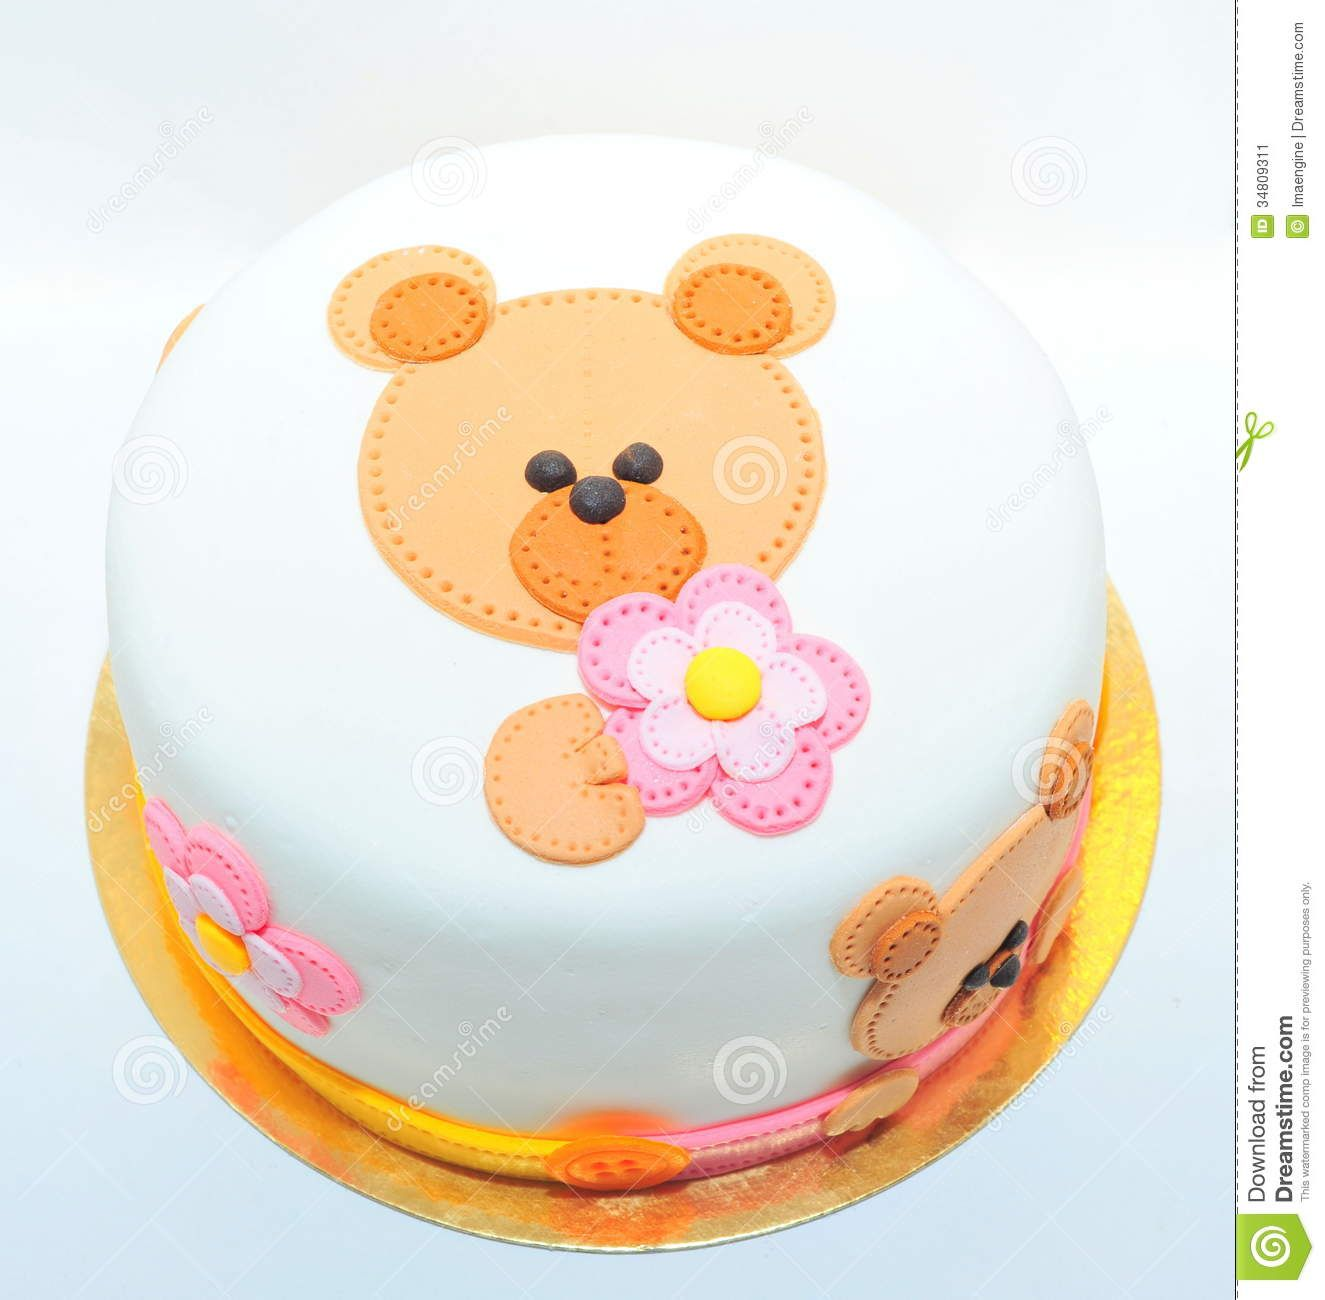 Girls Birthday Cake With A Fondant Teddy Bear Download From Over - Bear birthday cake